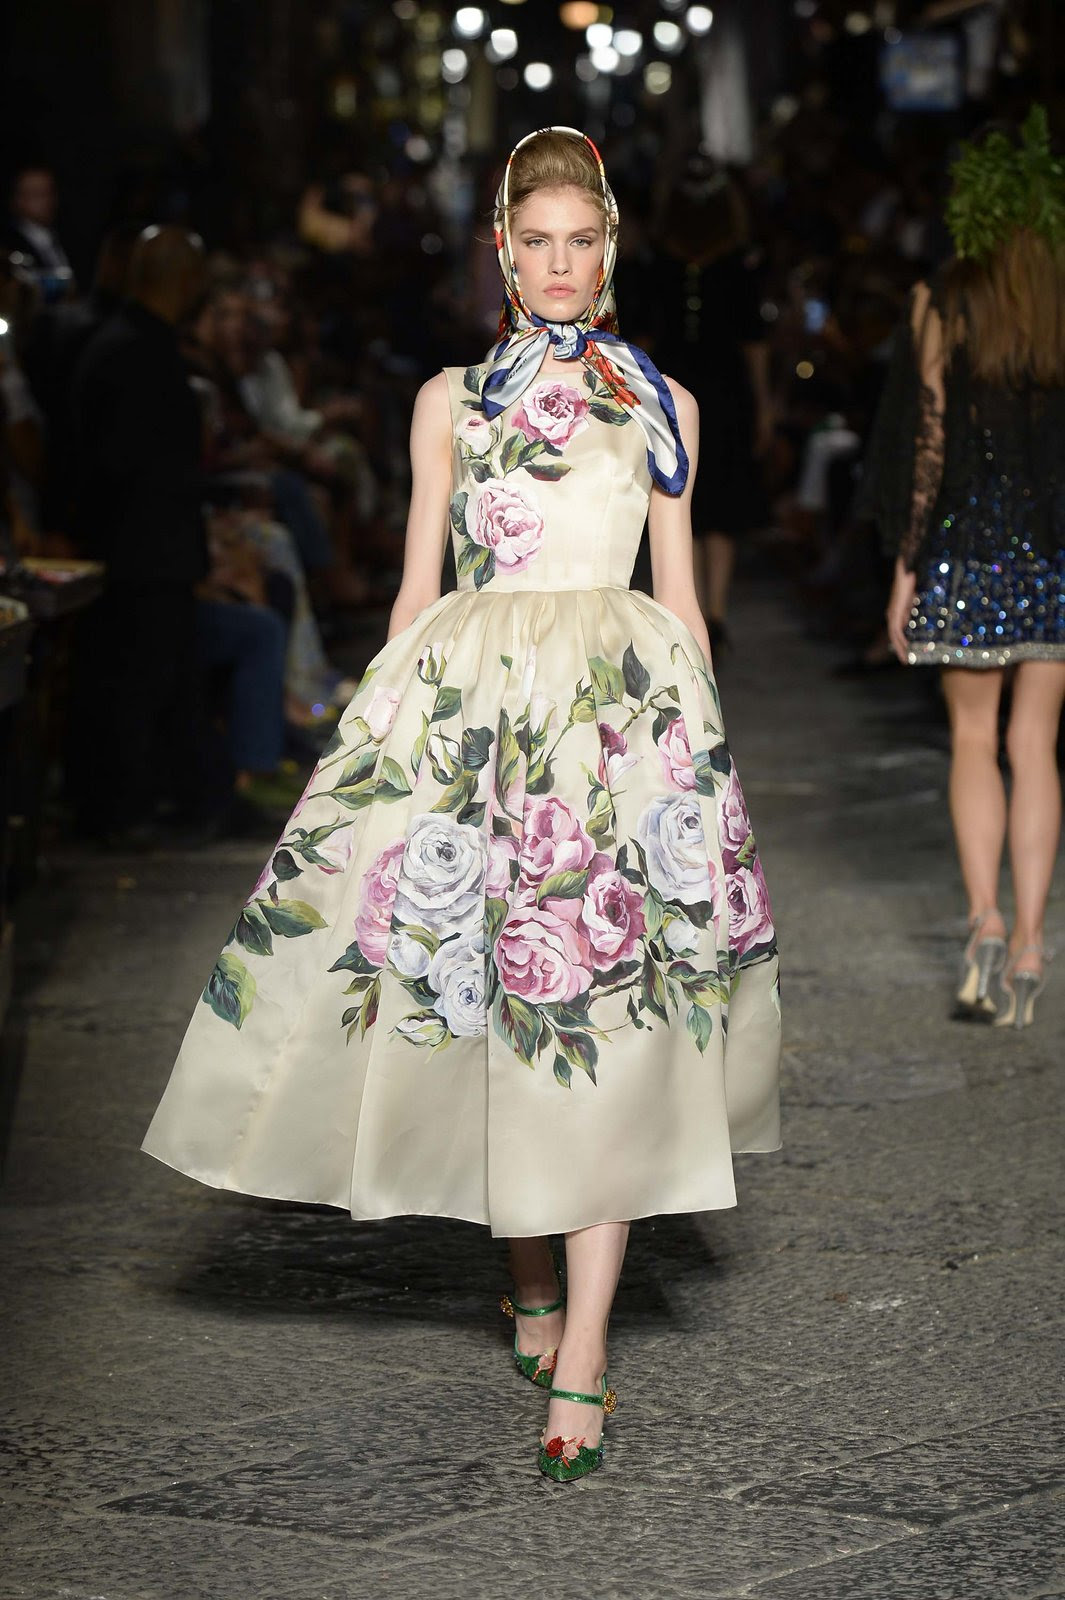 http://media.vogue.com/r/h_1600,w_1240/2016/07/09/24-dolce-and-gabbana-alta-moda-2016.jpg